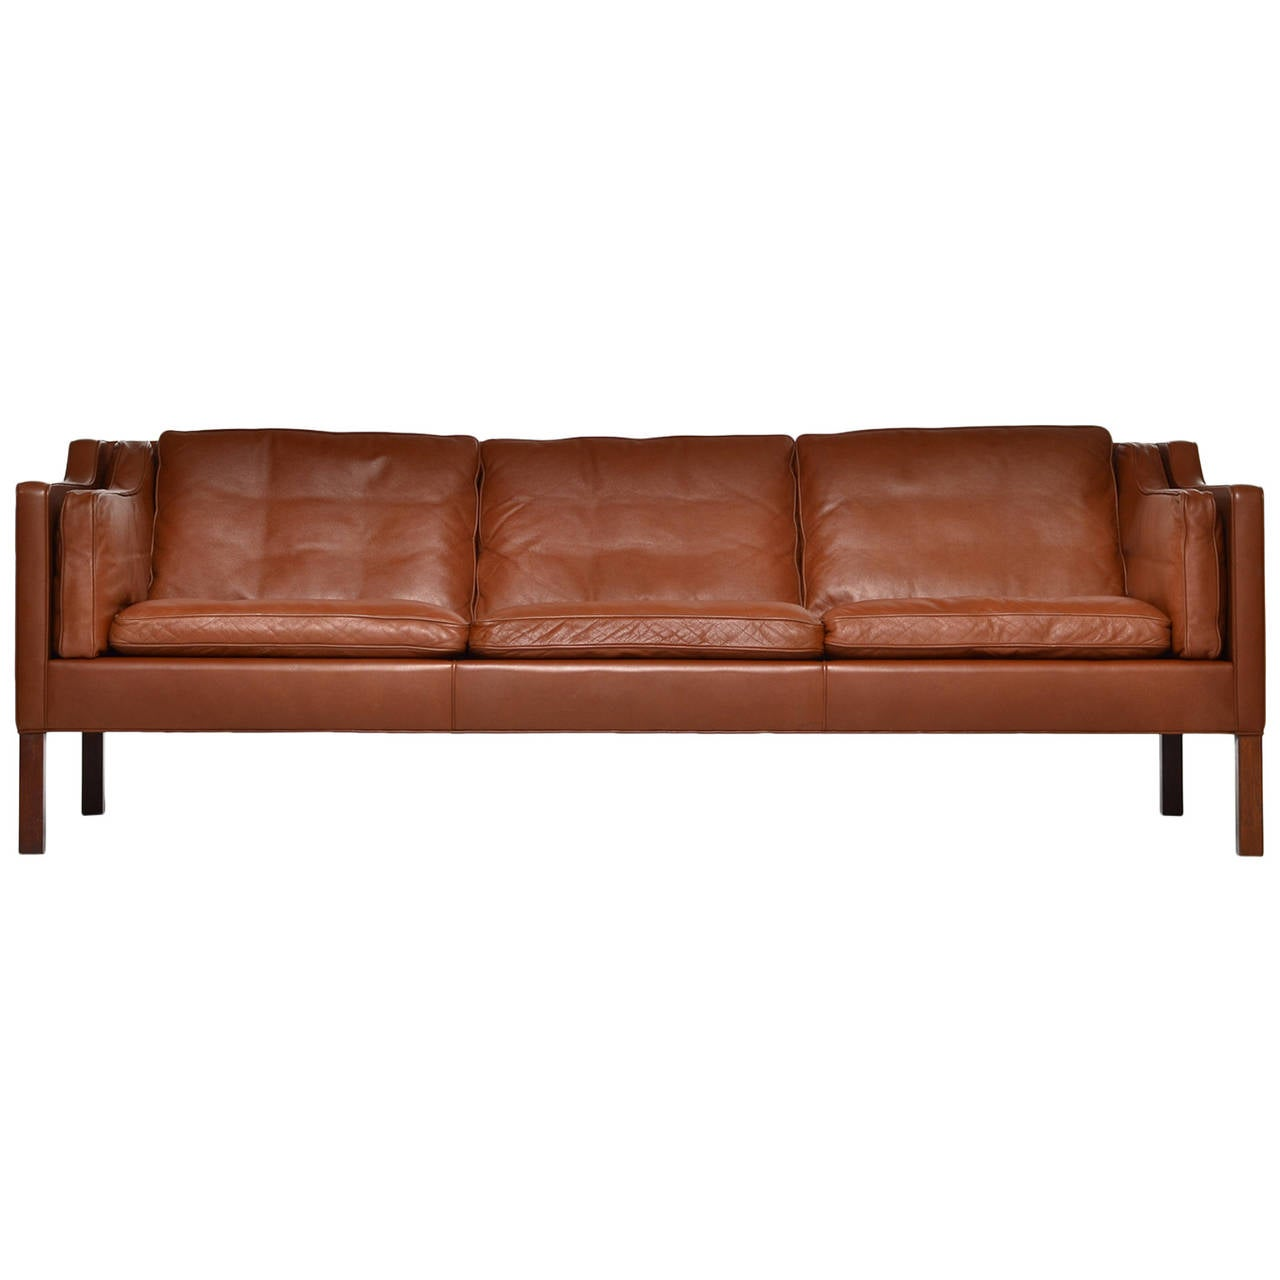 cognac leather sofa model 2213 by b rge mogensen for fredericia at 1stdibs